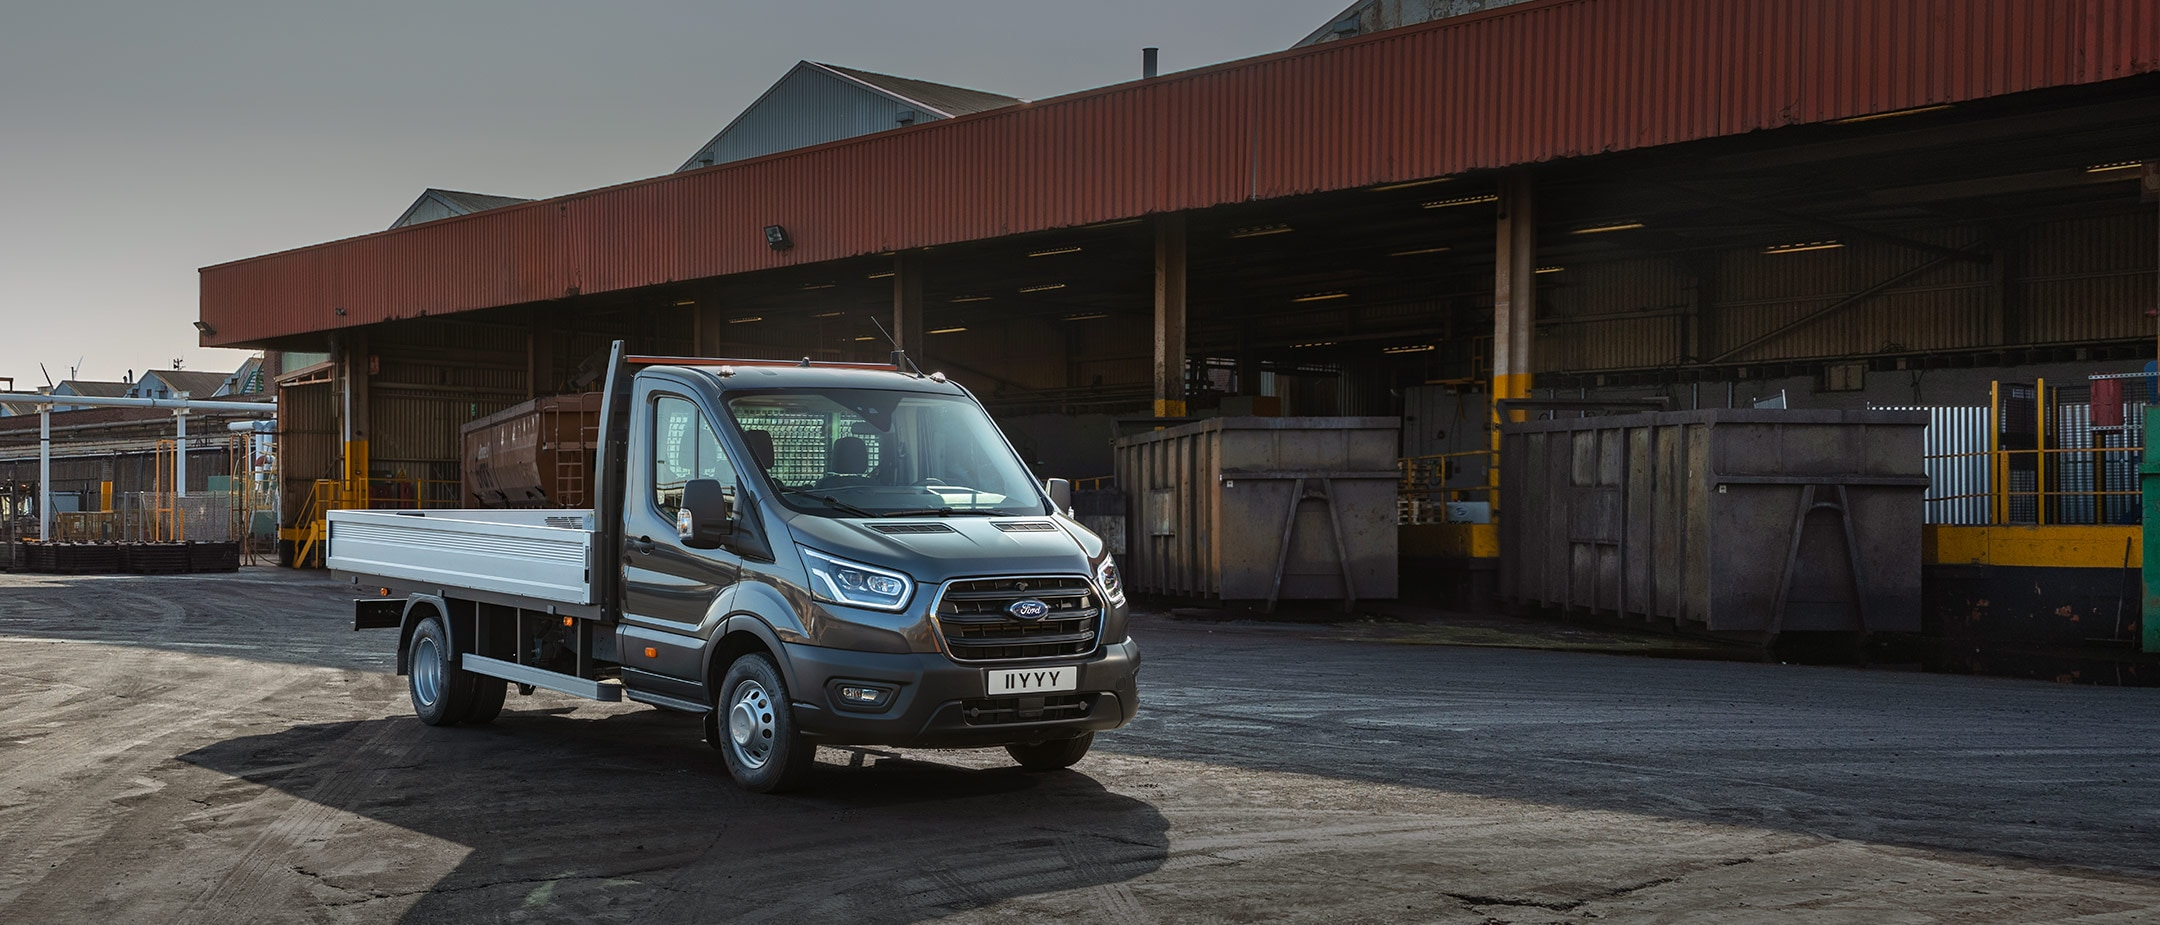 New Ford Transit Chassis Cab front view